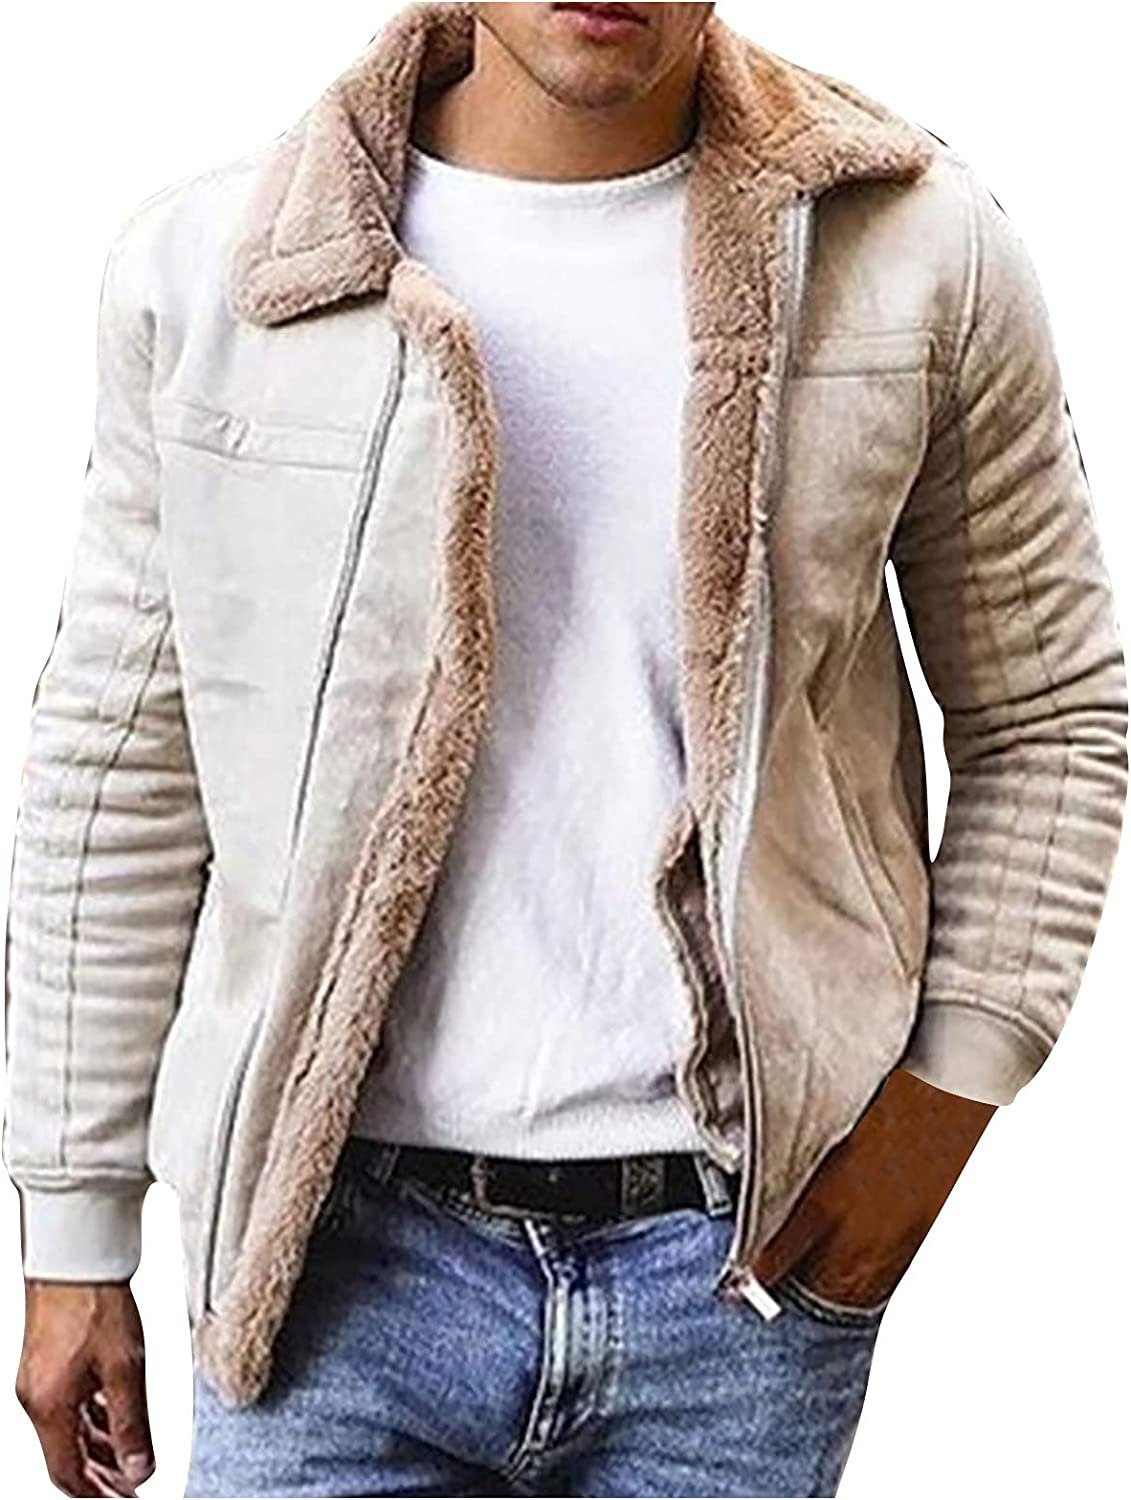 Men's New mail order Fleece Jacket Winter Warm Military Casual Coat Jack Quantity limited Bomber